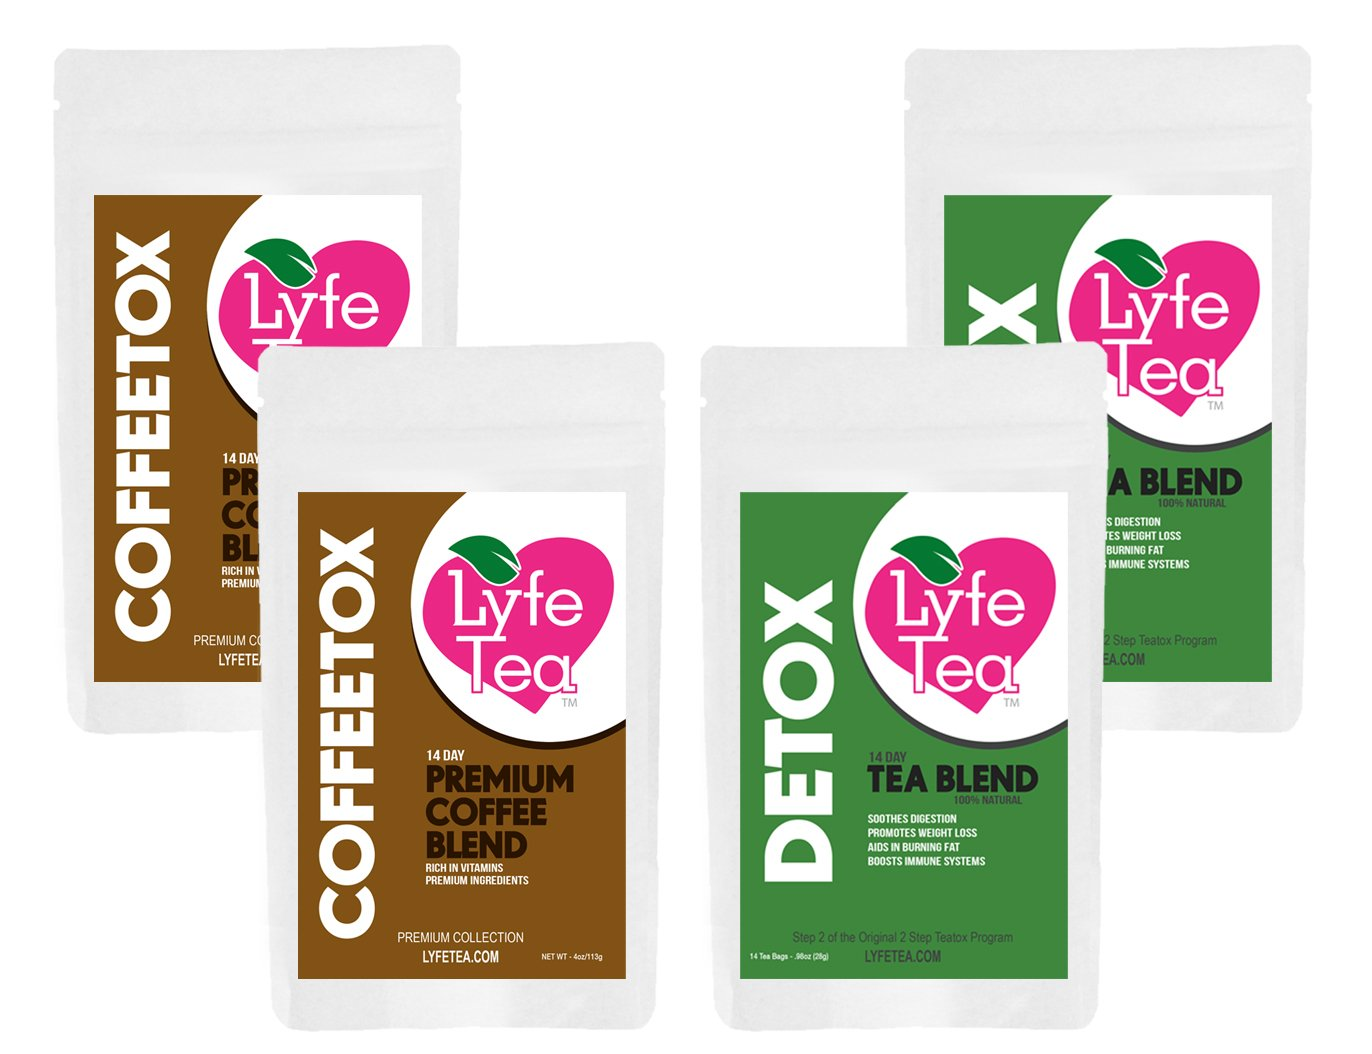 28 Day Coffeetox - Natural Moringa, Guarana, and Arabica Beans that Cleanse Toxins, Soothes Digestion, Increases Energy, Boosts Metabolism, Helps Improve Health, Promotes Weight Loss